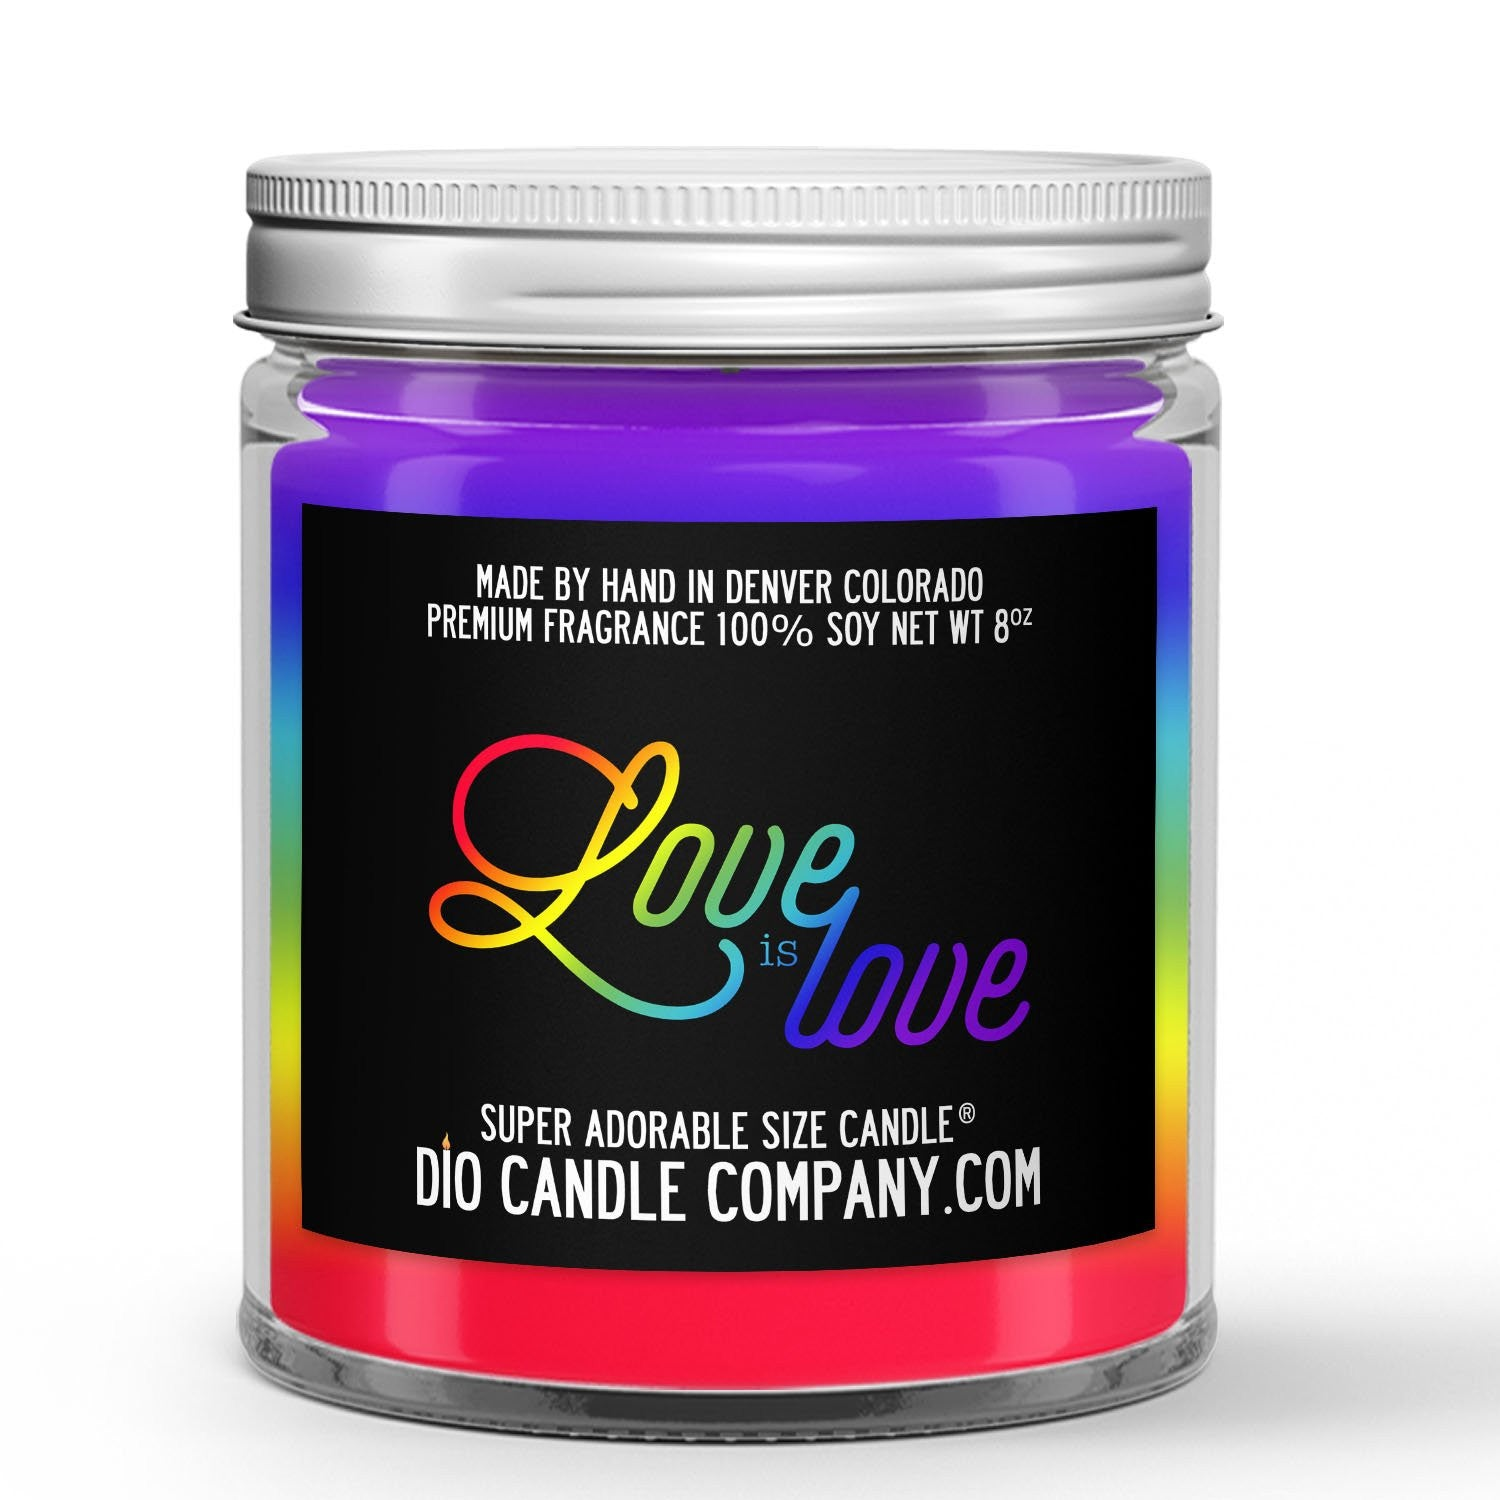 Love is Love Candle - Powdered Sugar - Sweet Cereal - 8oz Super Adorable Size Candle® - Dio Candle Company